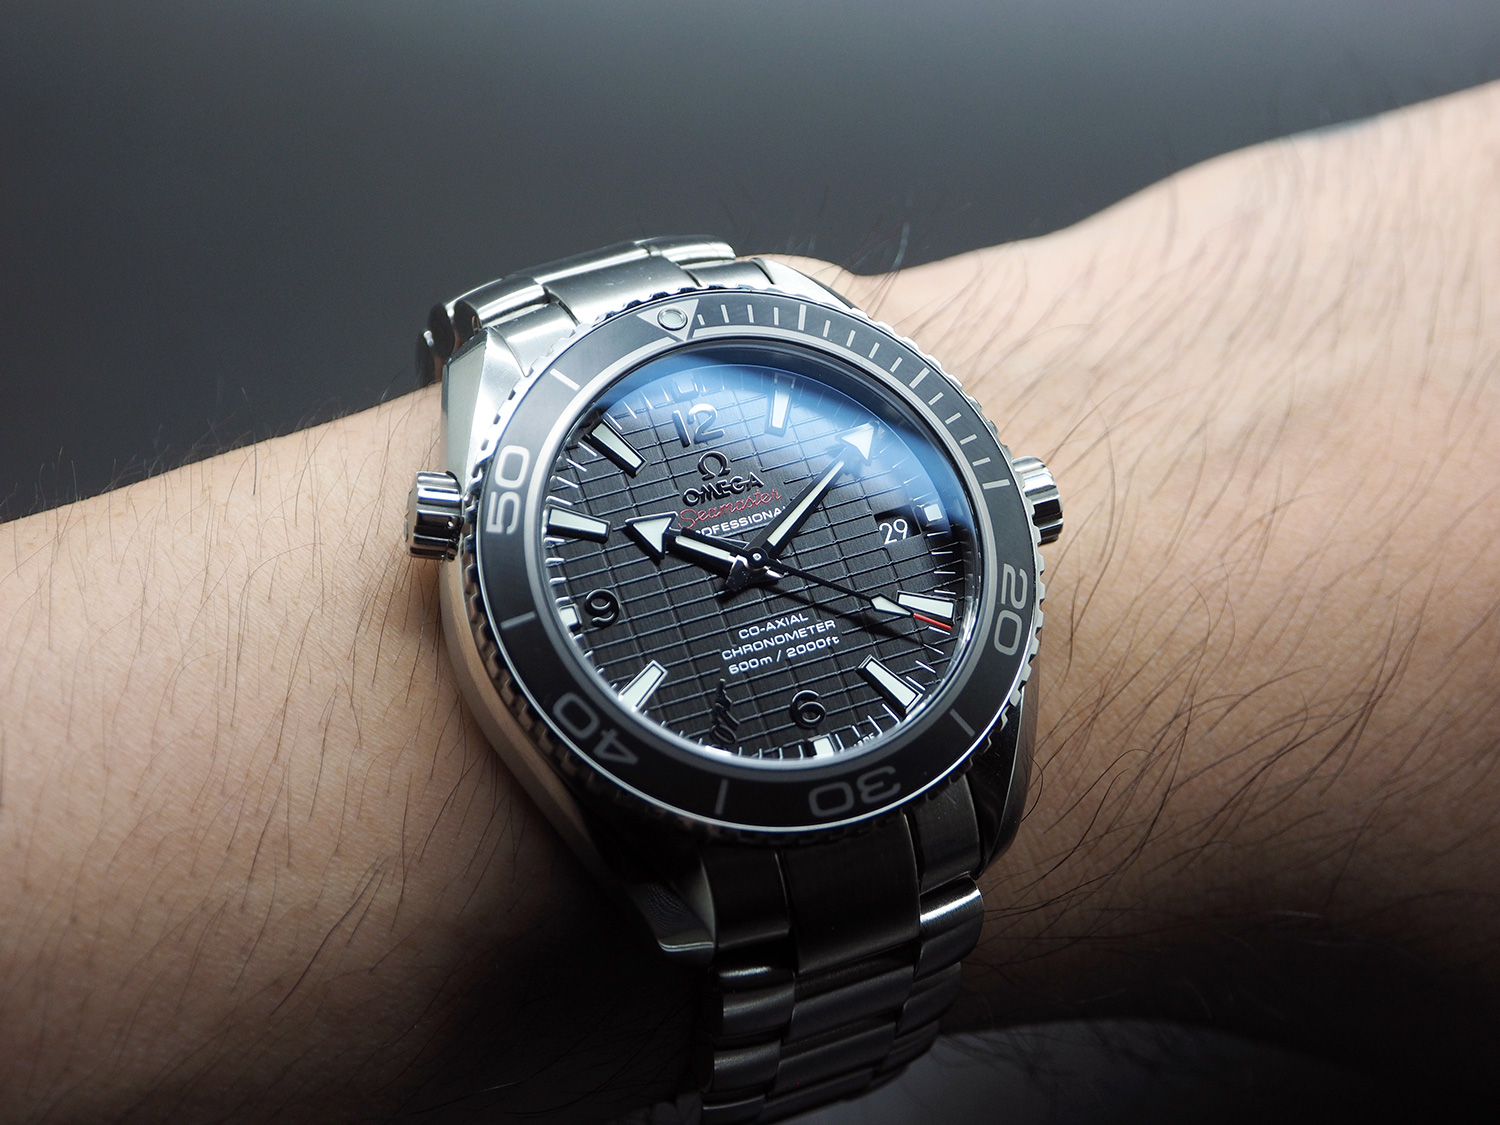 Omega Seamaster Planet Ocean Automatic Black Ceramic 42 mm 007 SKYFALL Limited Edition 8